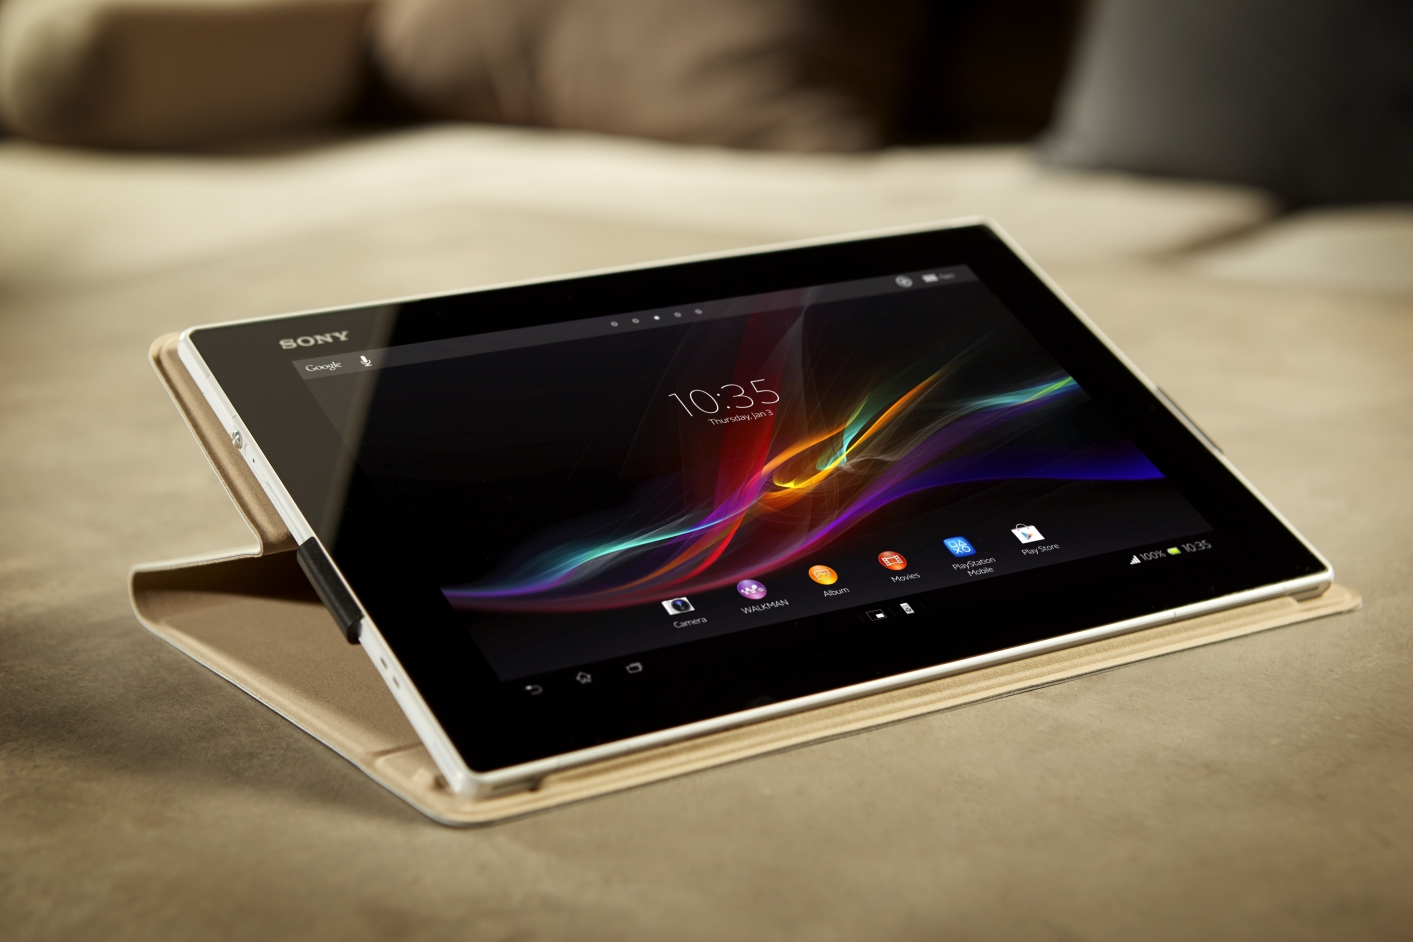 Sony Xperia Tablet Z Release Date for Model SGP311U1/B